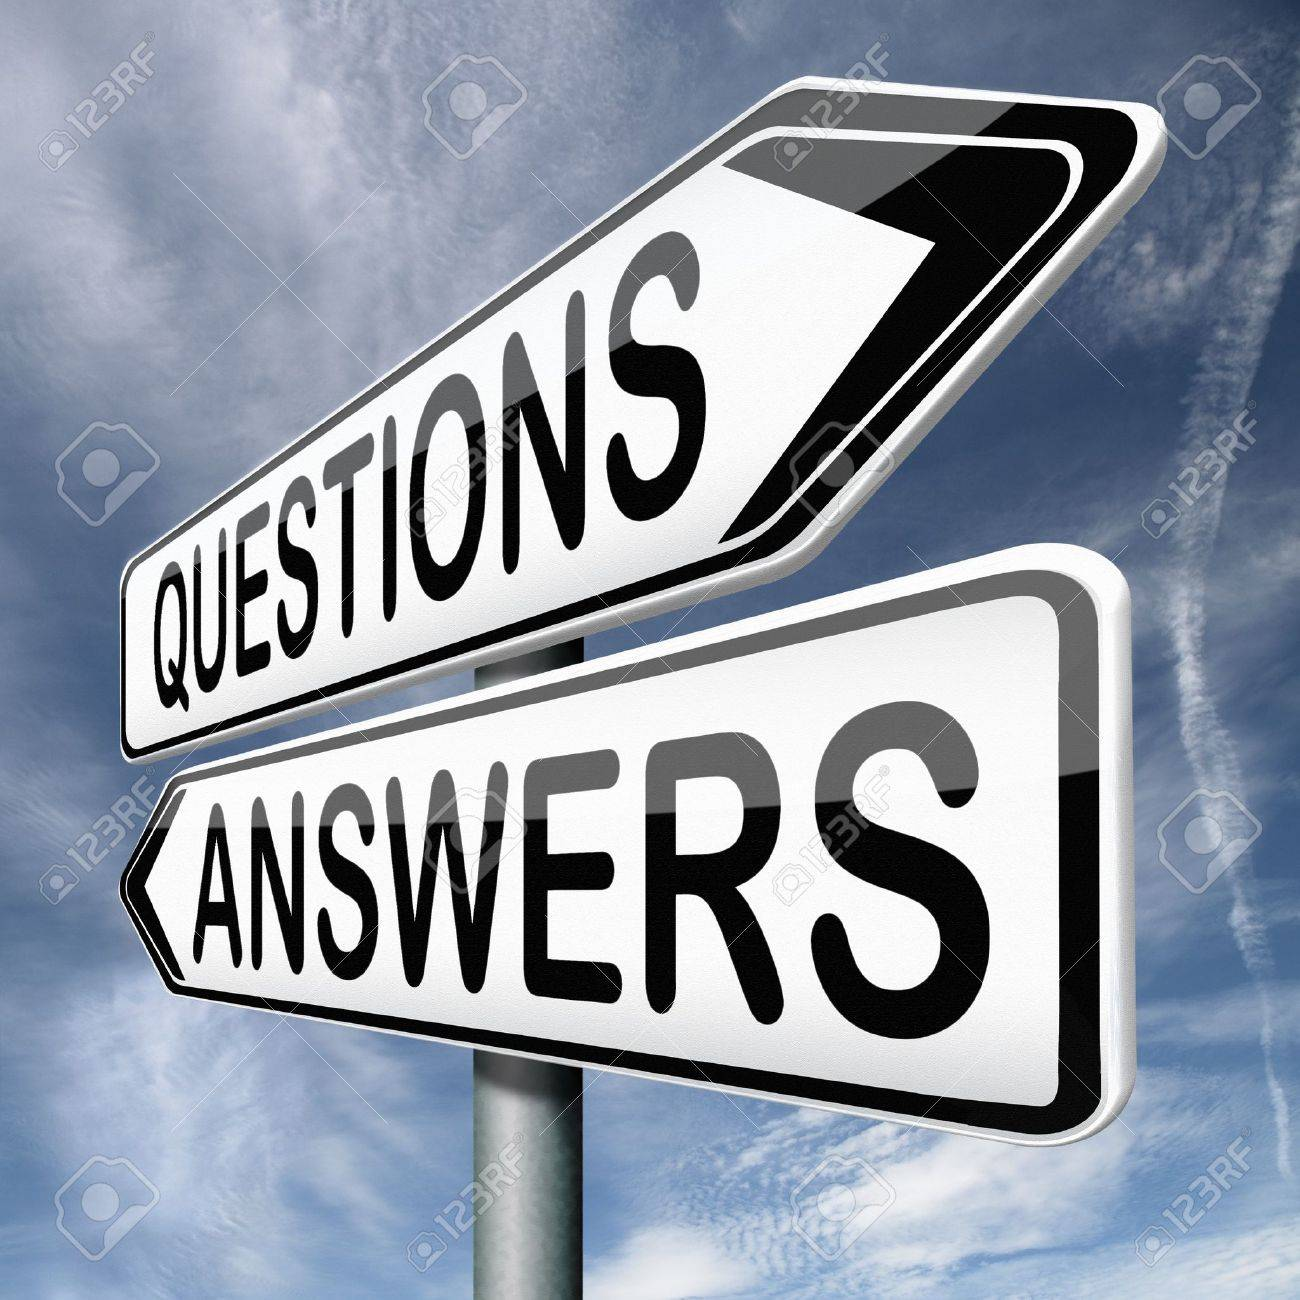 Questions Answers Ask The Right Question And Get An Answer Road Sign  Indicating Online Help Or Support Desk Solving Problems